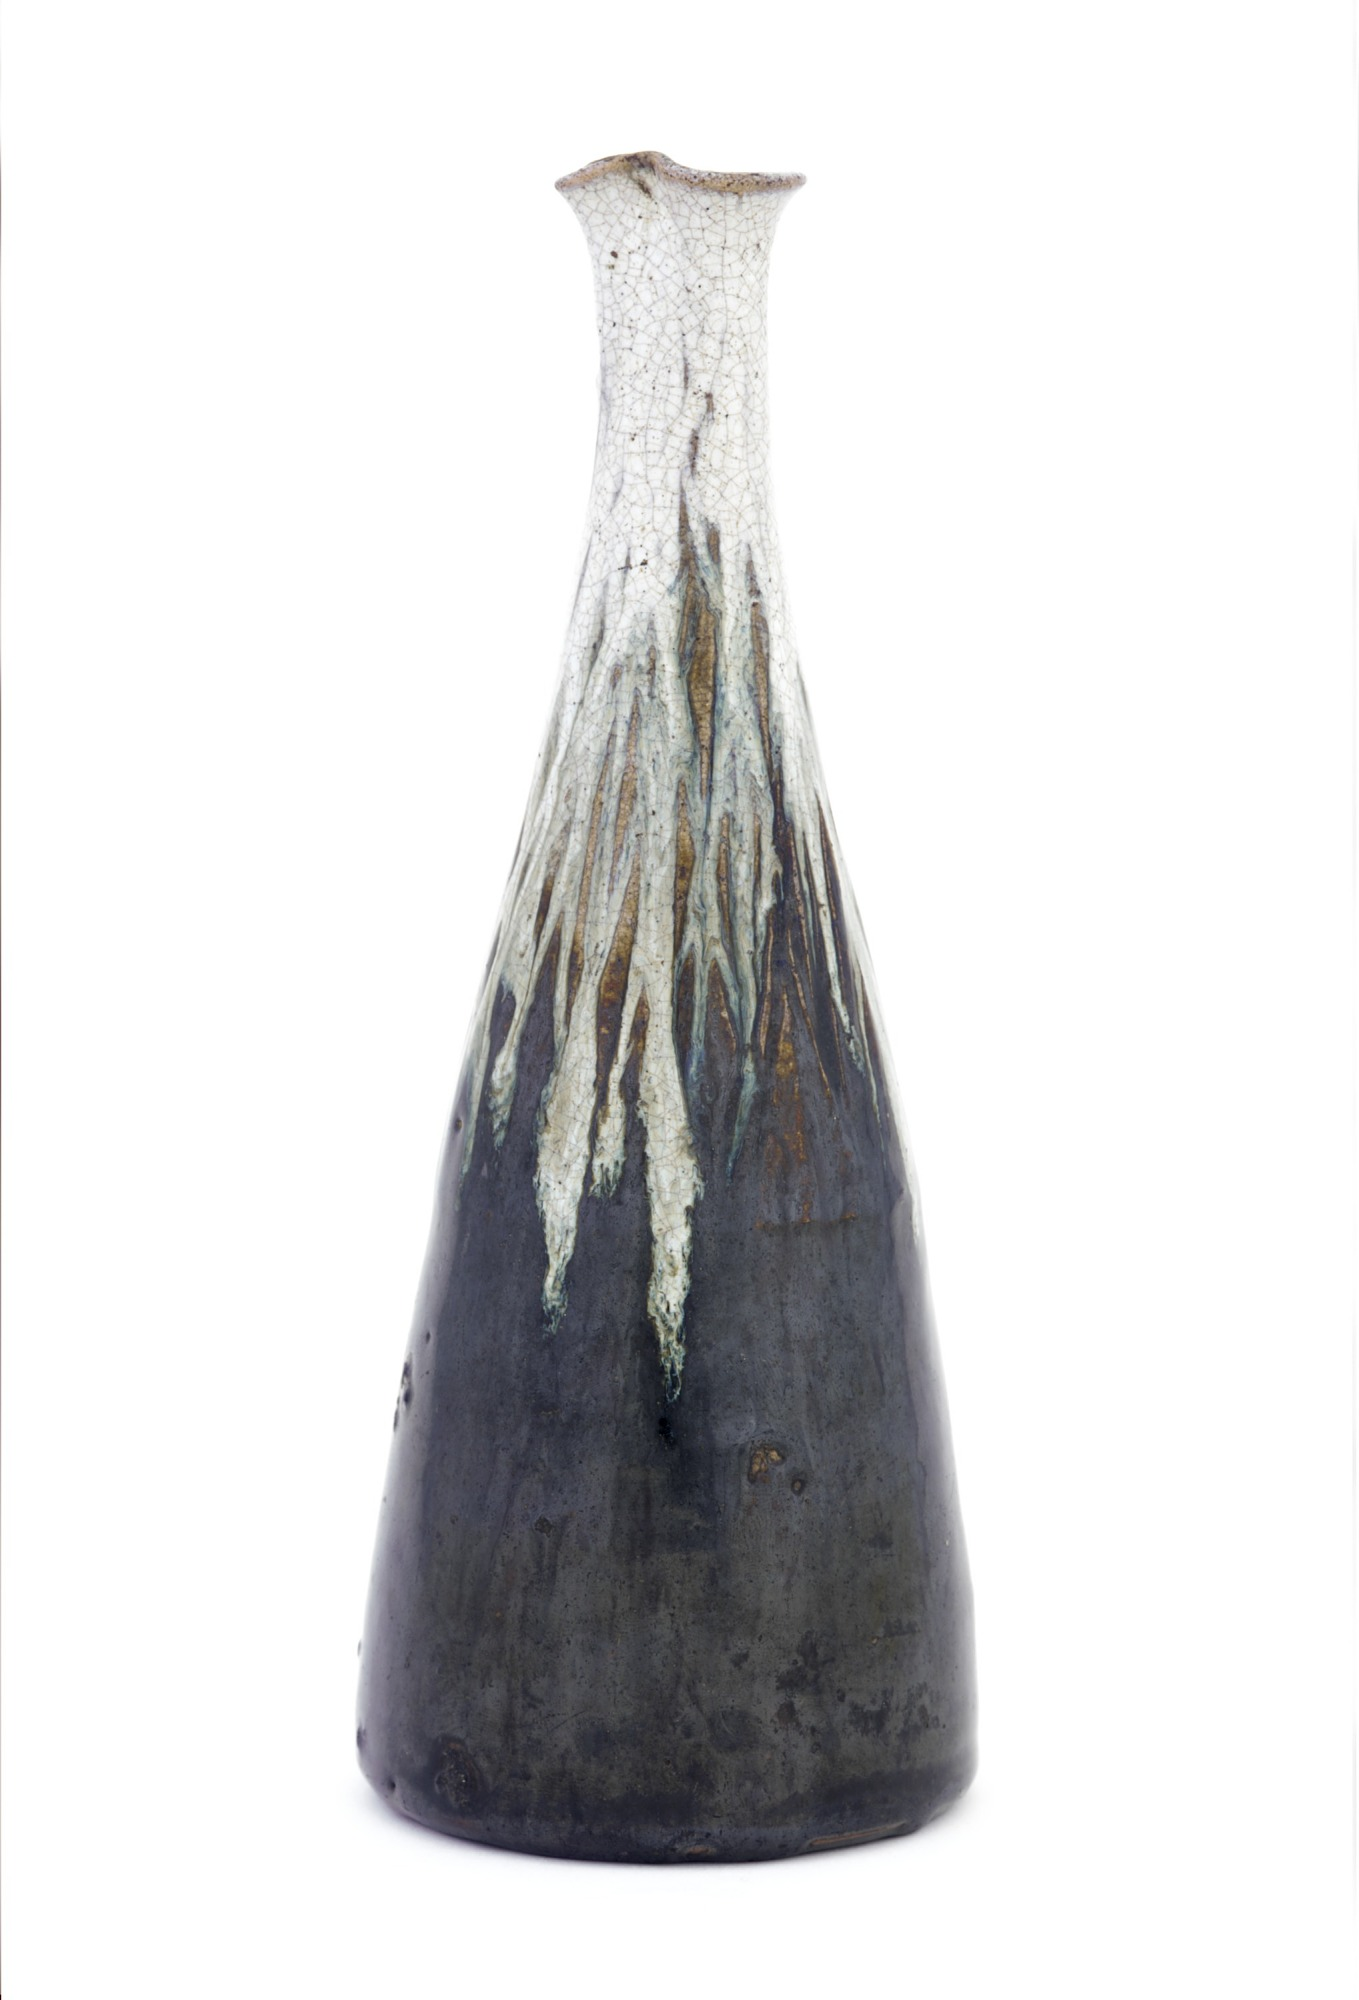 profile: Seto ware white-necked sake bottle with pouring spout